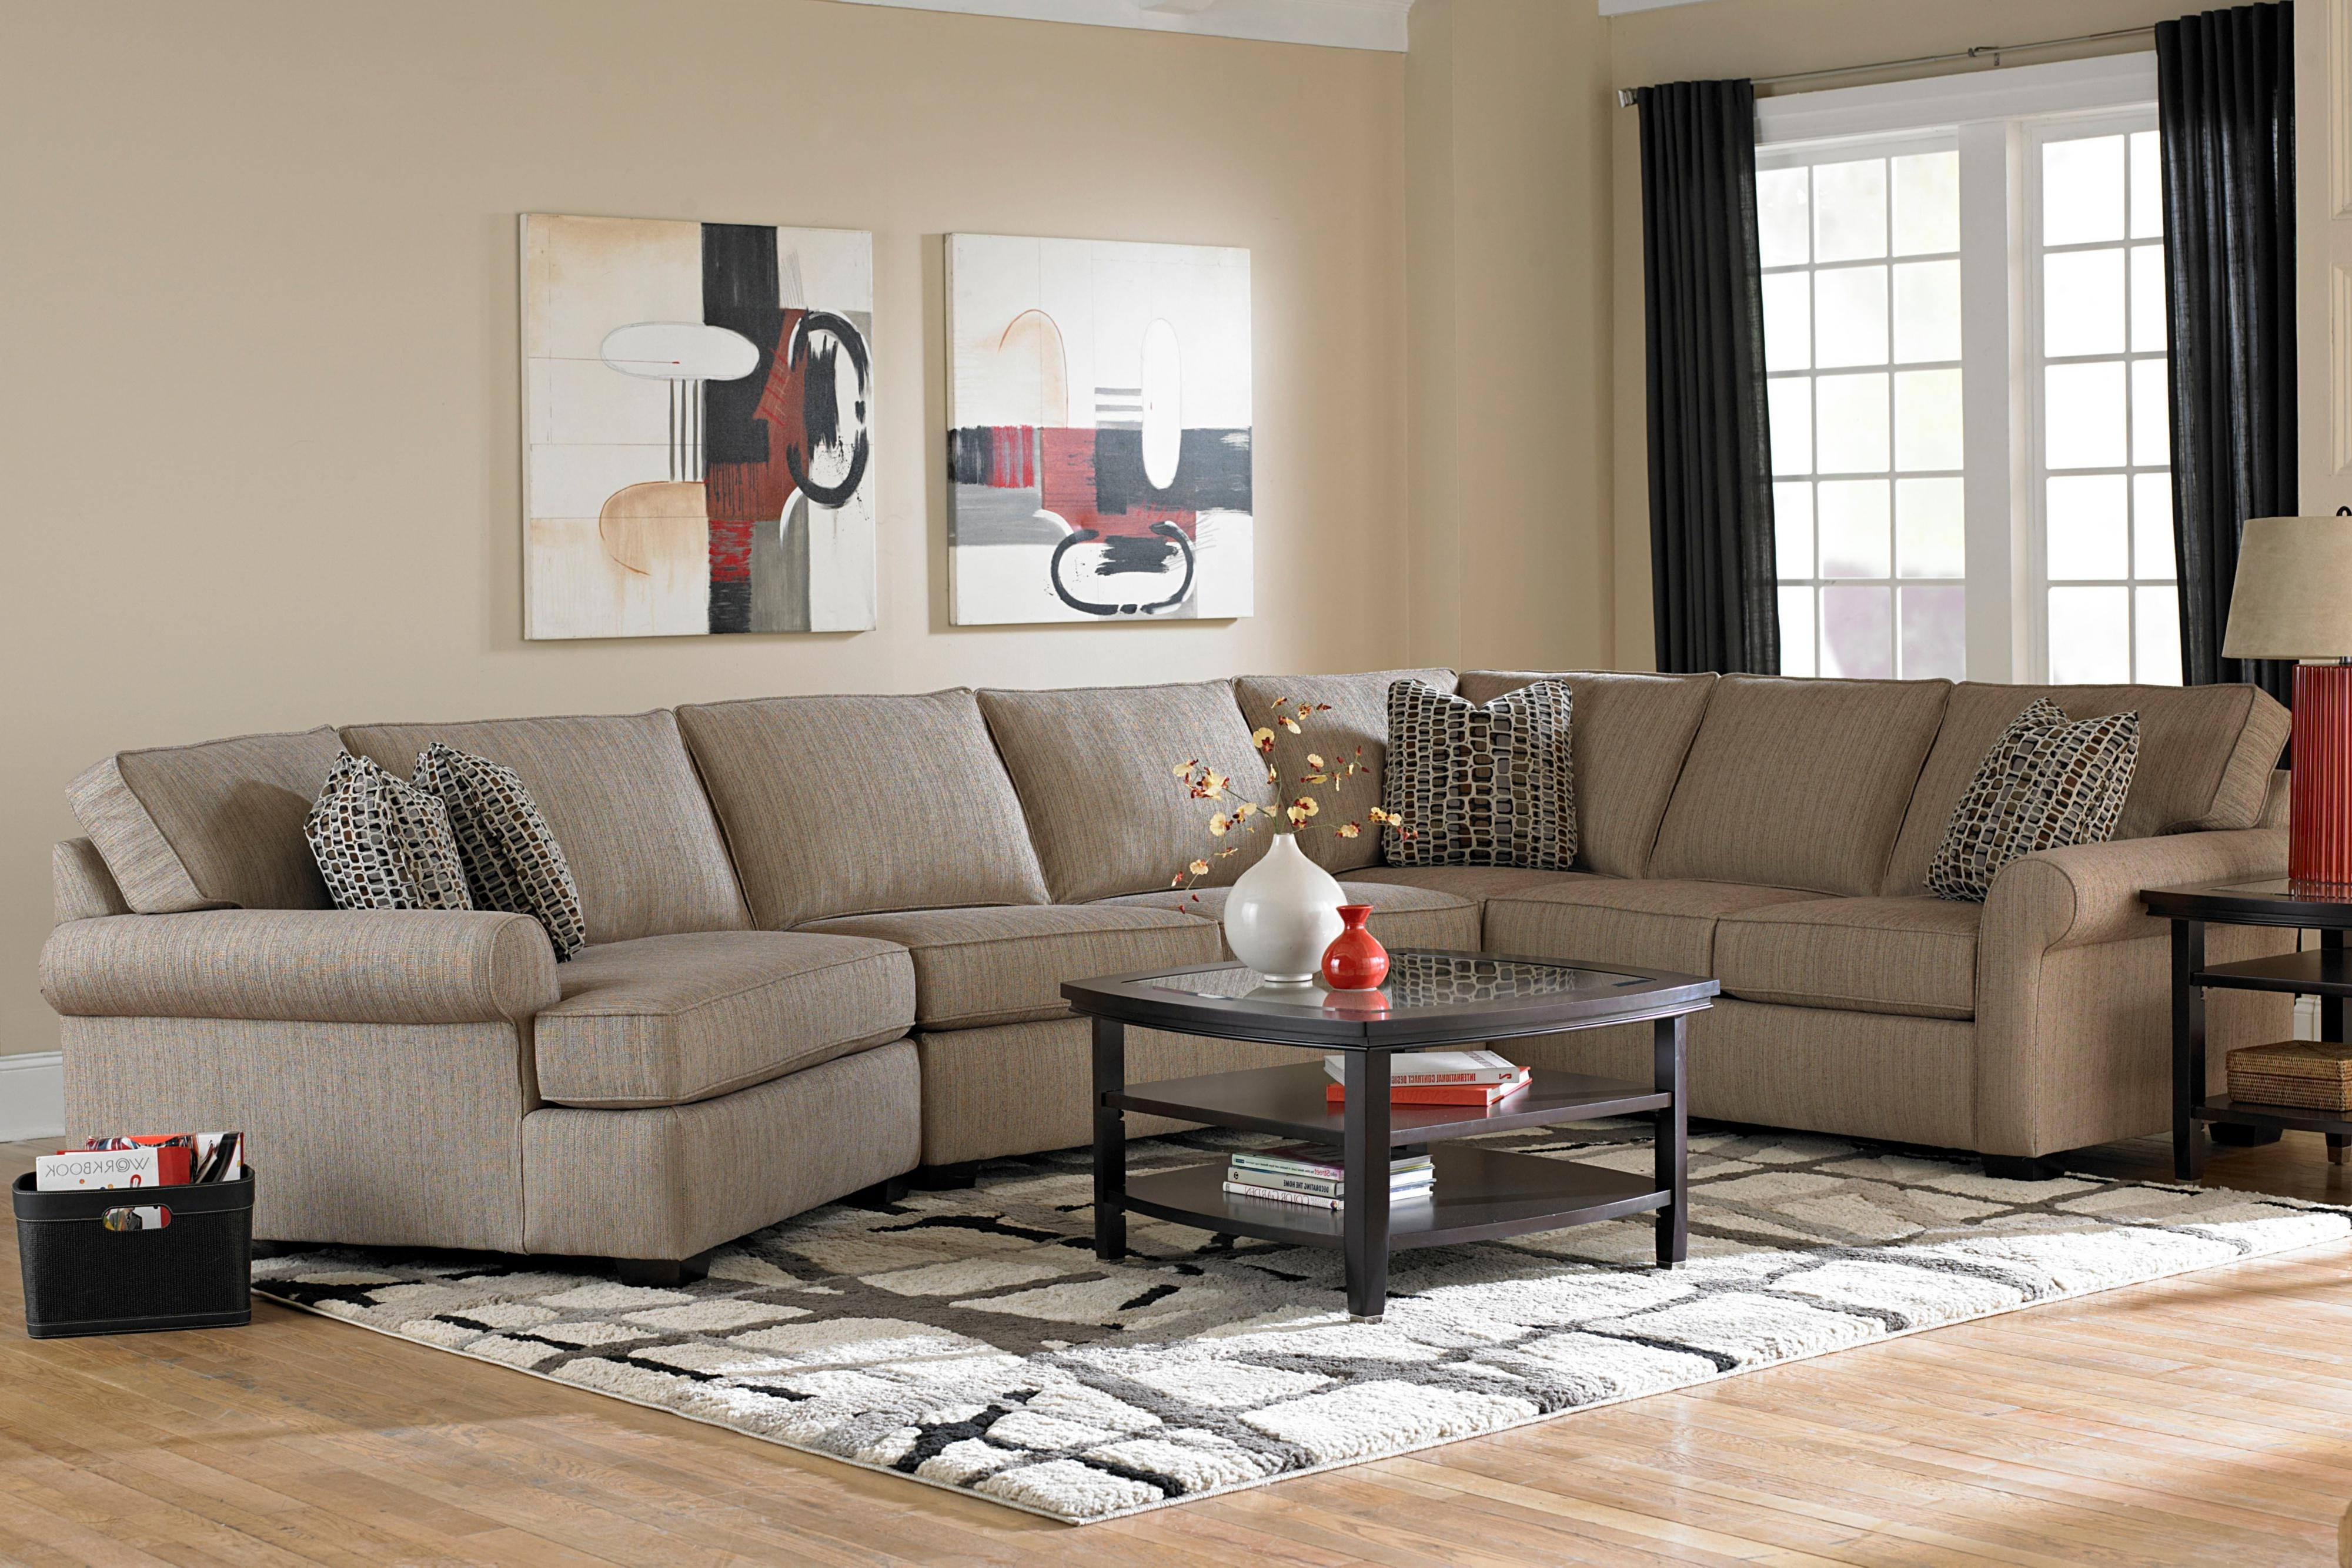 Lancaster Pa Sectional Sofas Within 2019 Broyhill Furniture Ethan Transitional Sectional Sofa With Right (View 6 of 20)